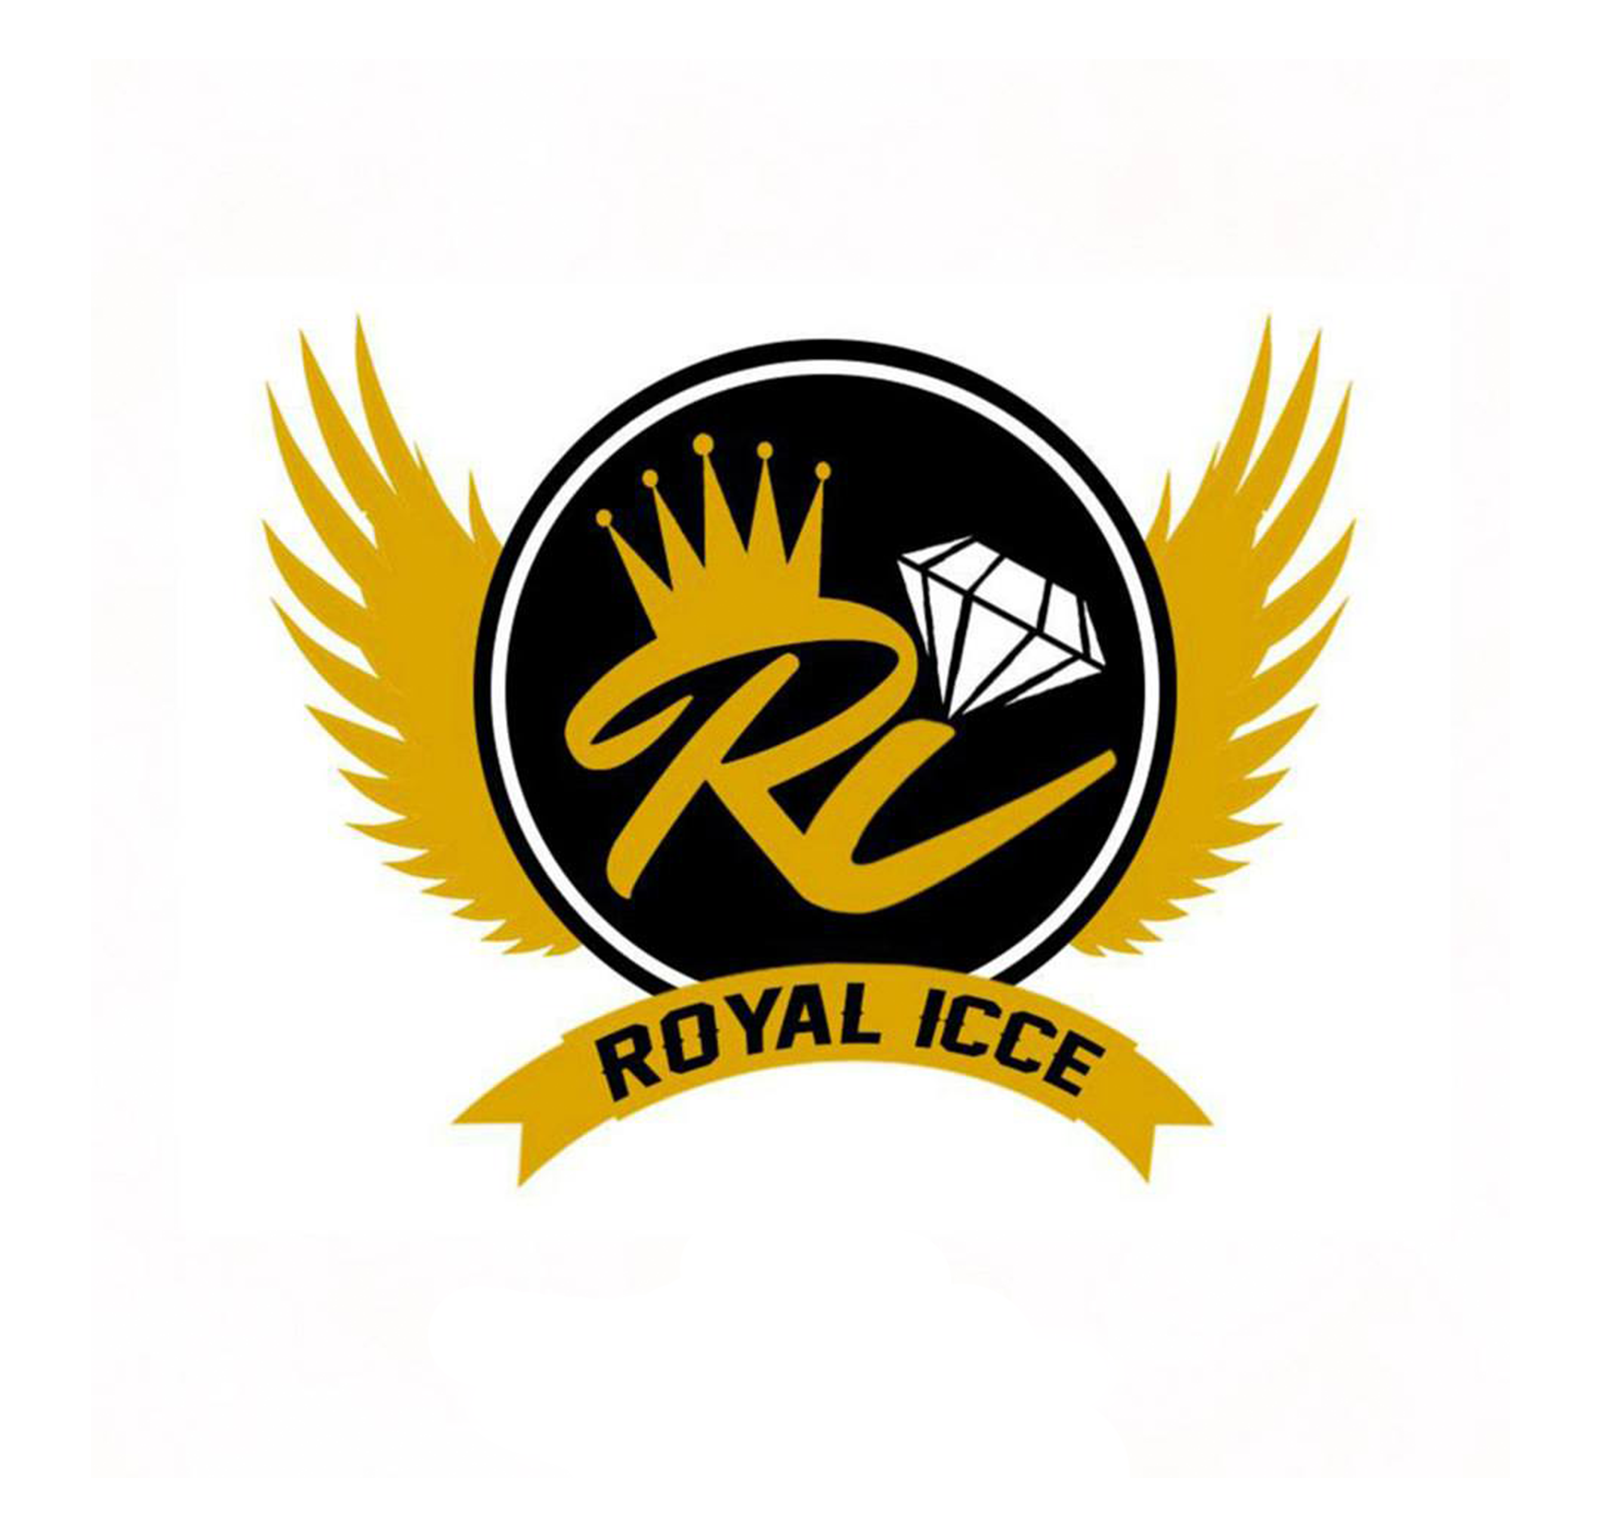 Royal Icce.png